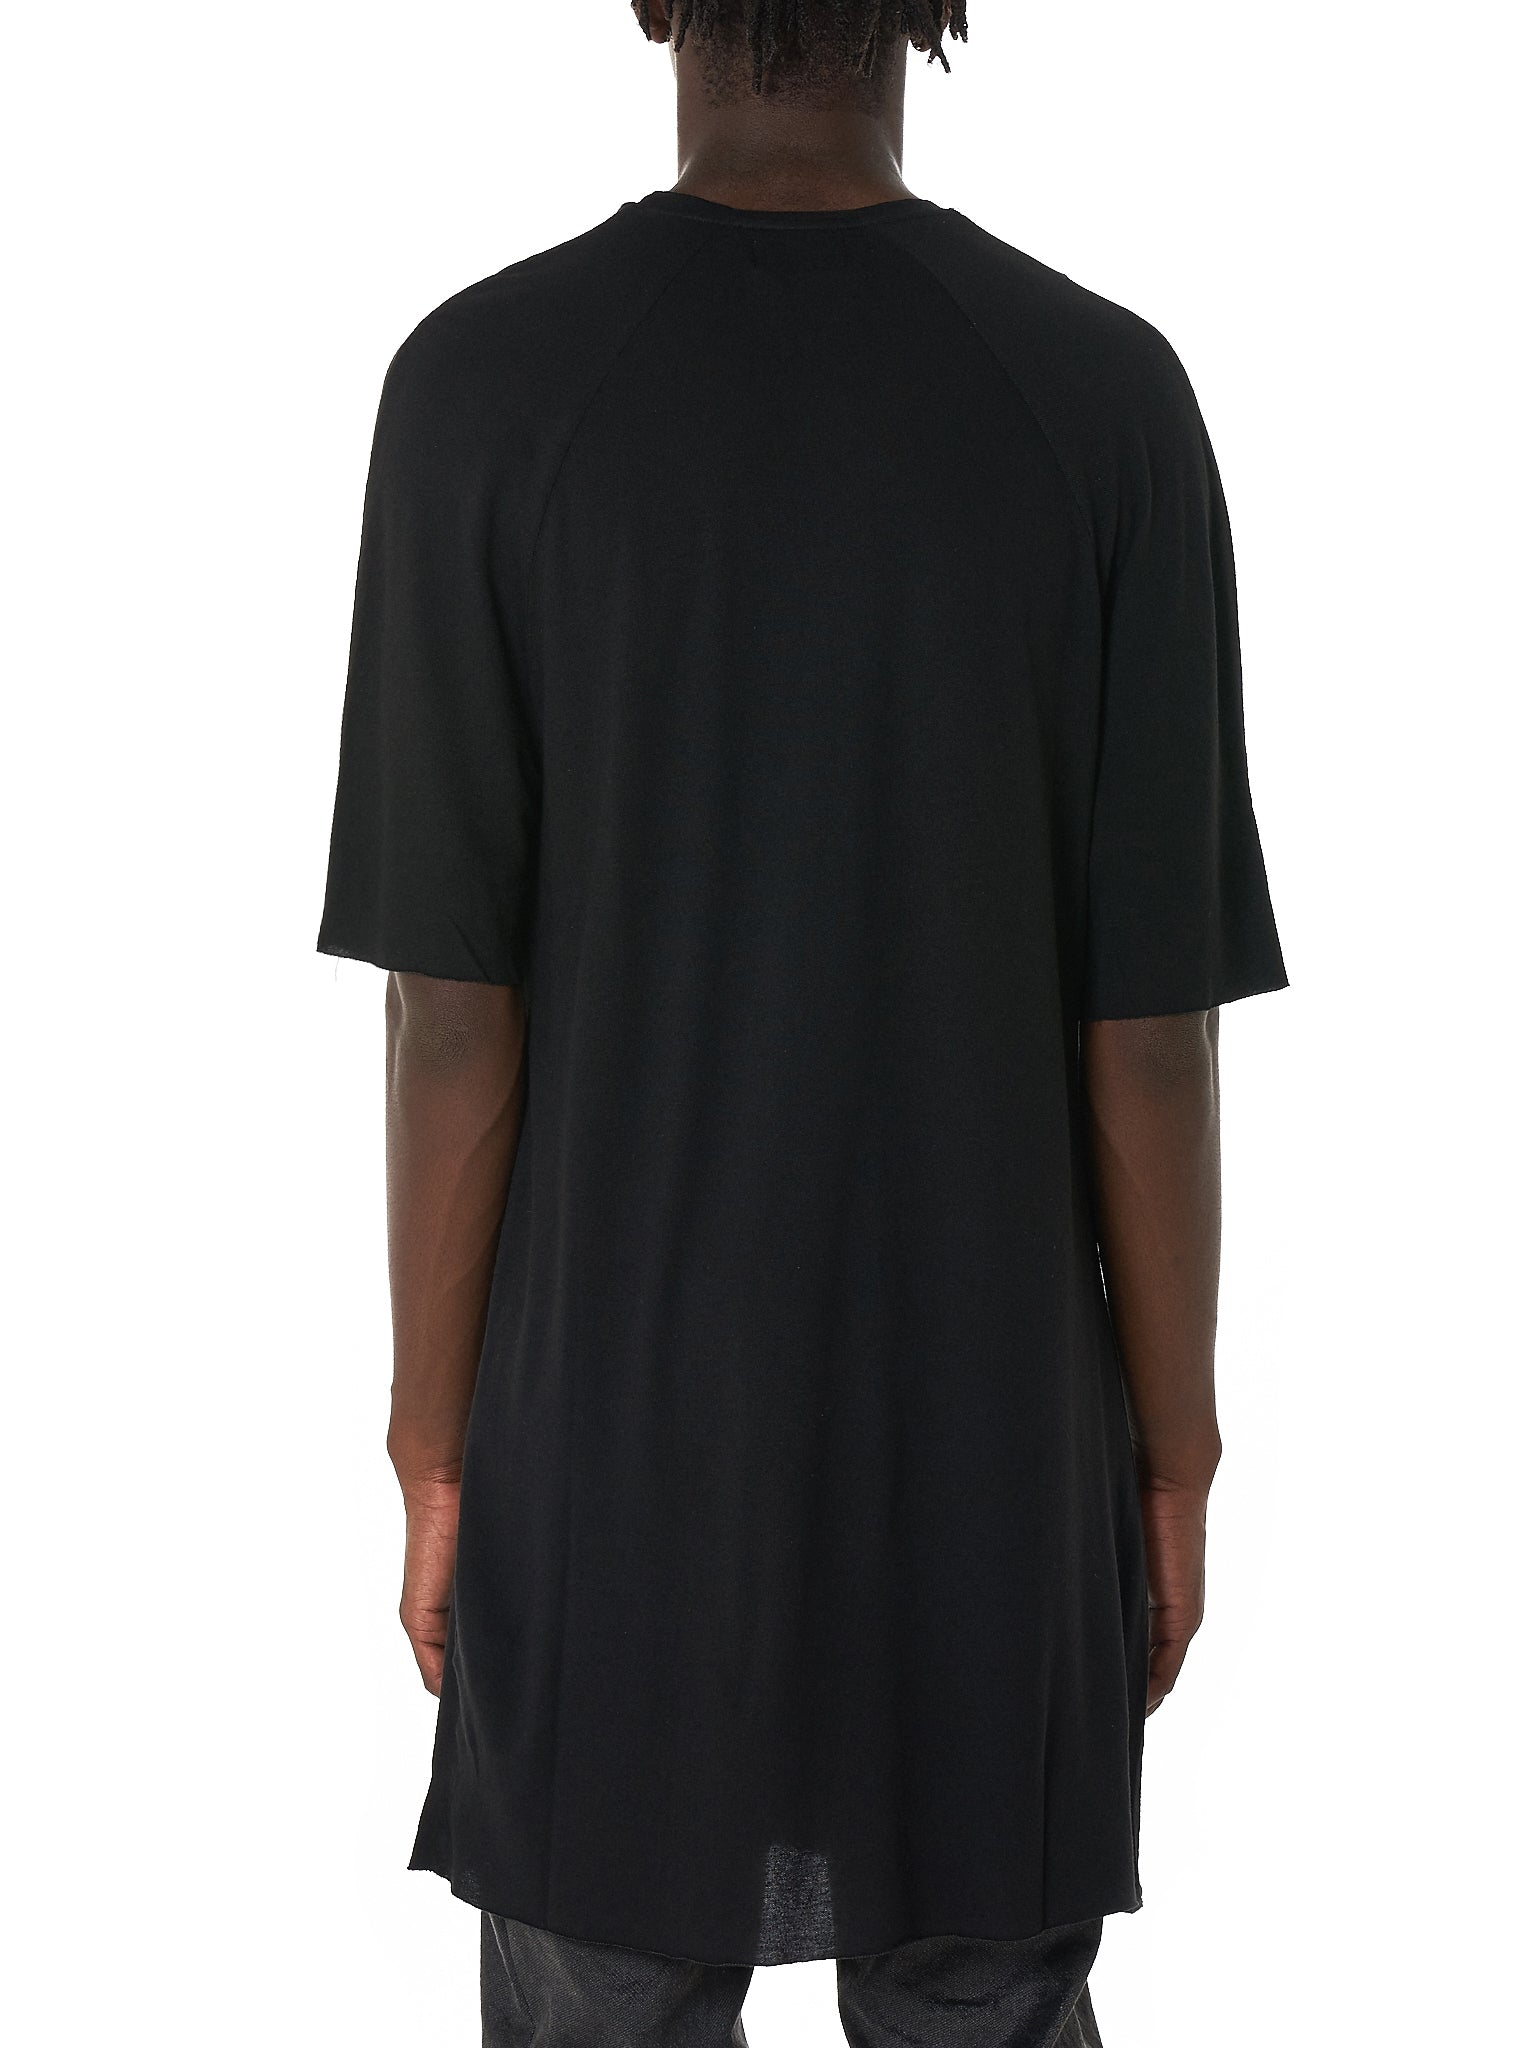 Lost & Found Tee - Hlorenzo Back